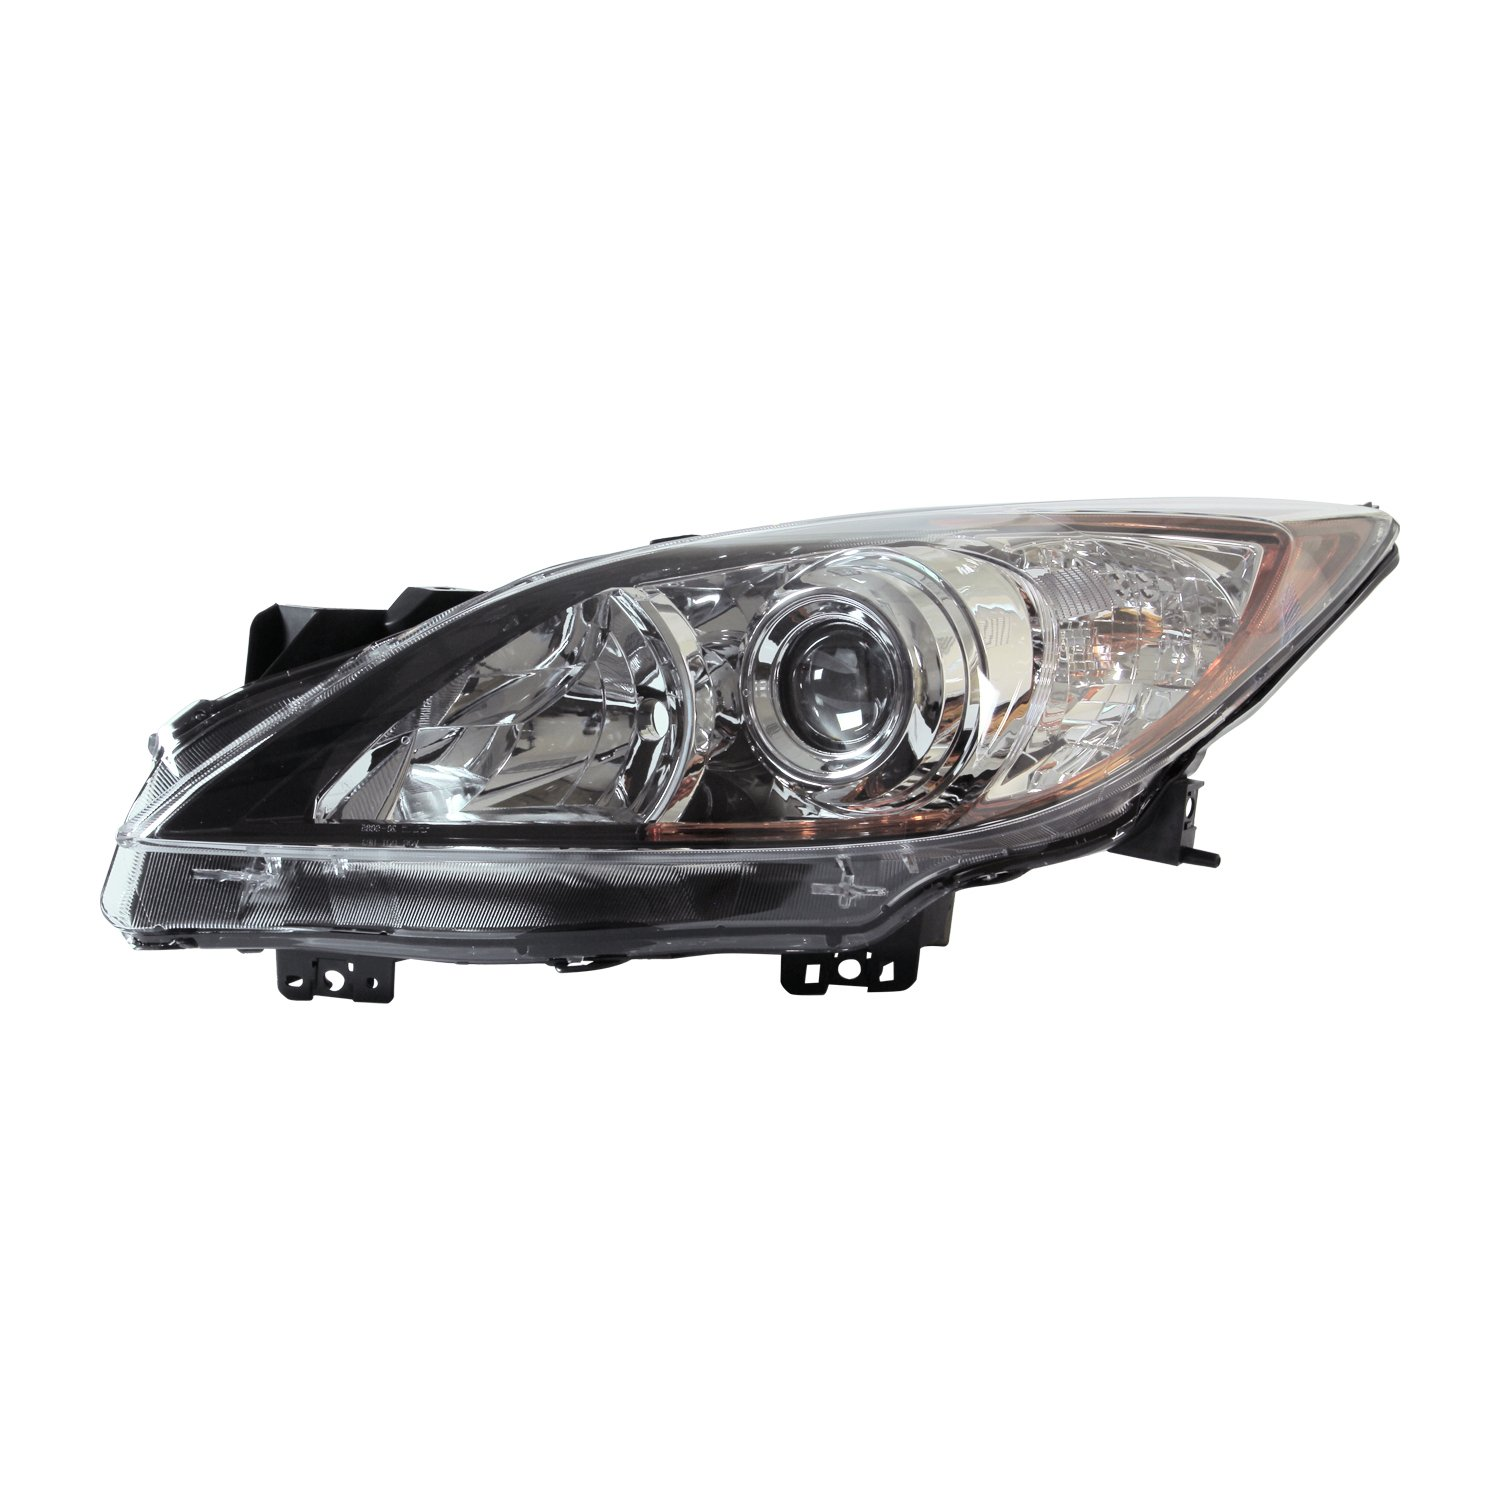 TYC 20-9085-01-1 Mazda 3 Right Replacement Head Lamp